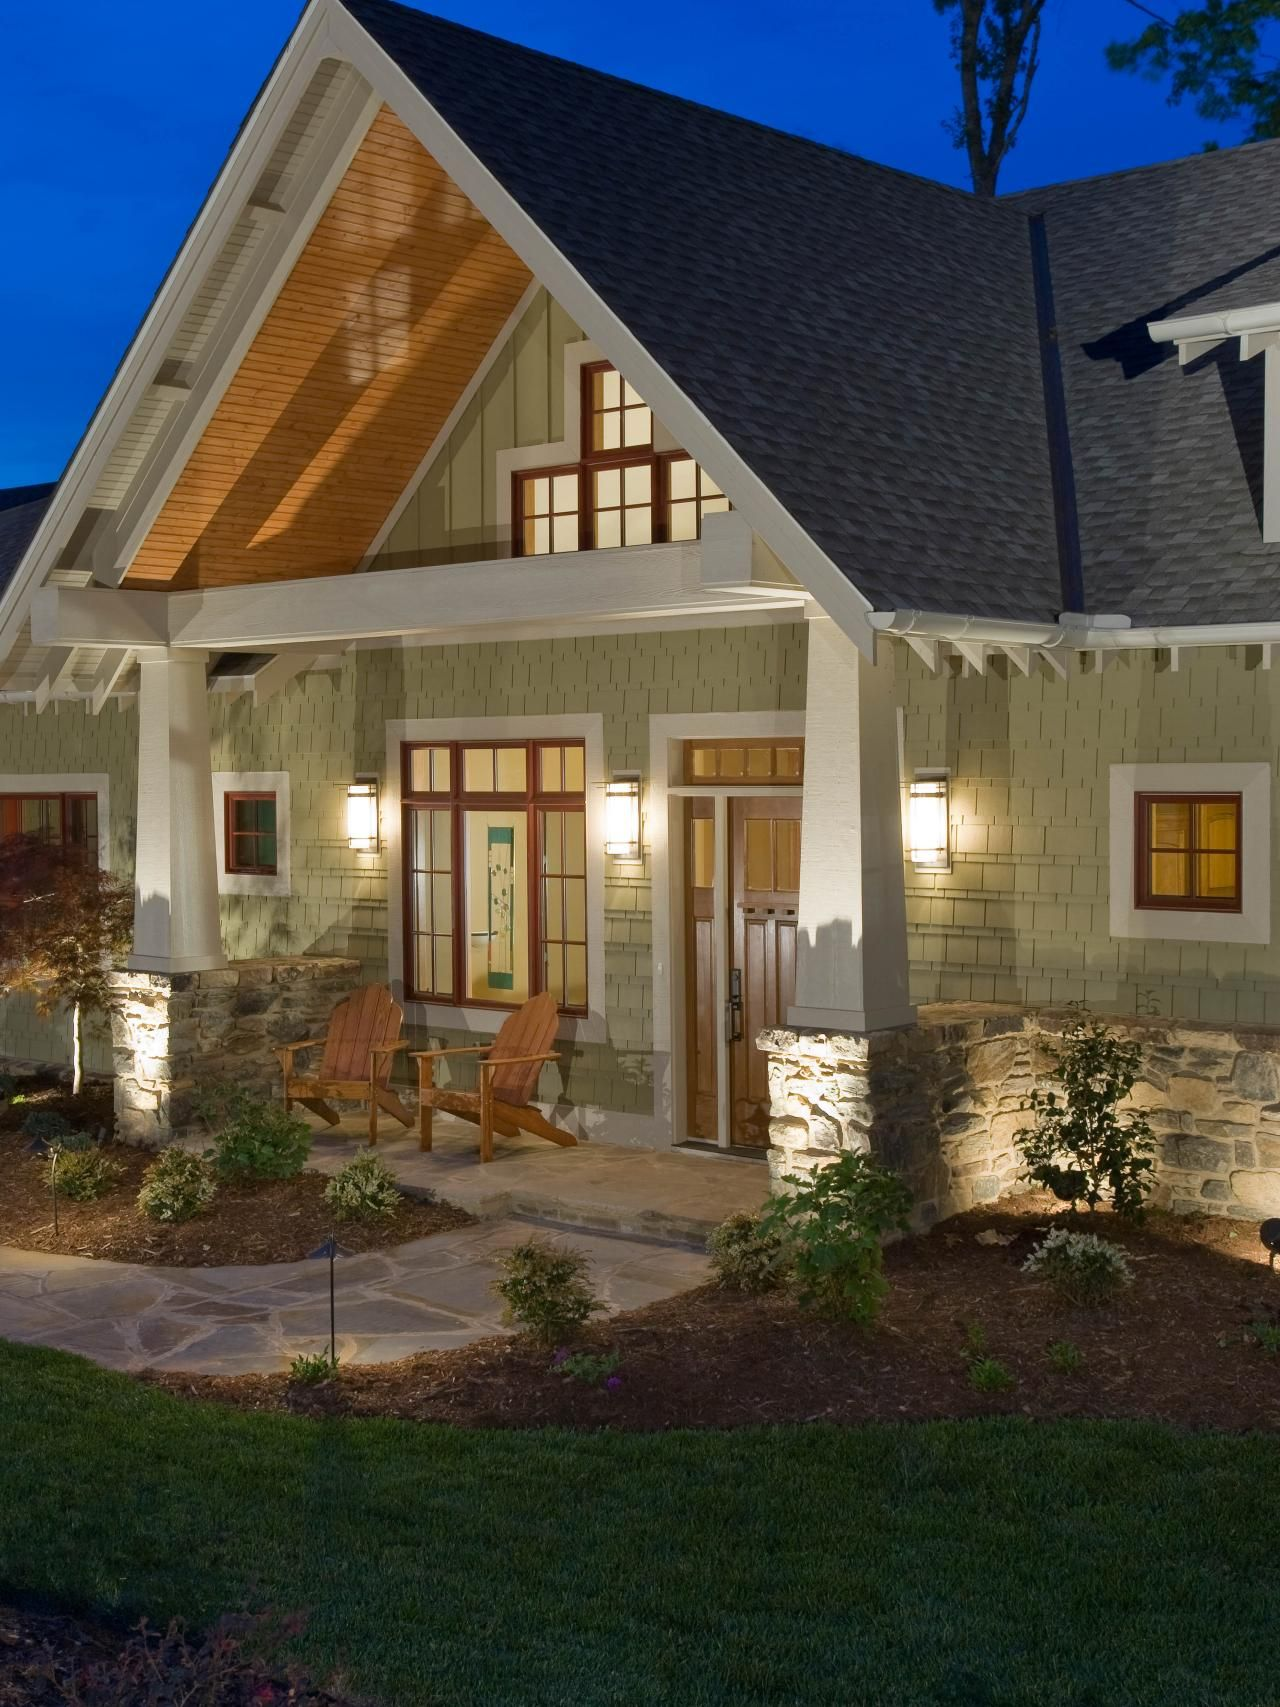 This Craftsman Style Home Has A Large Inviting Front Porch Accentuated By Architectural Details